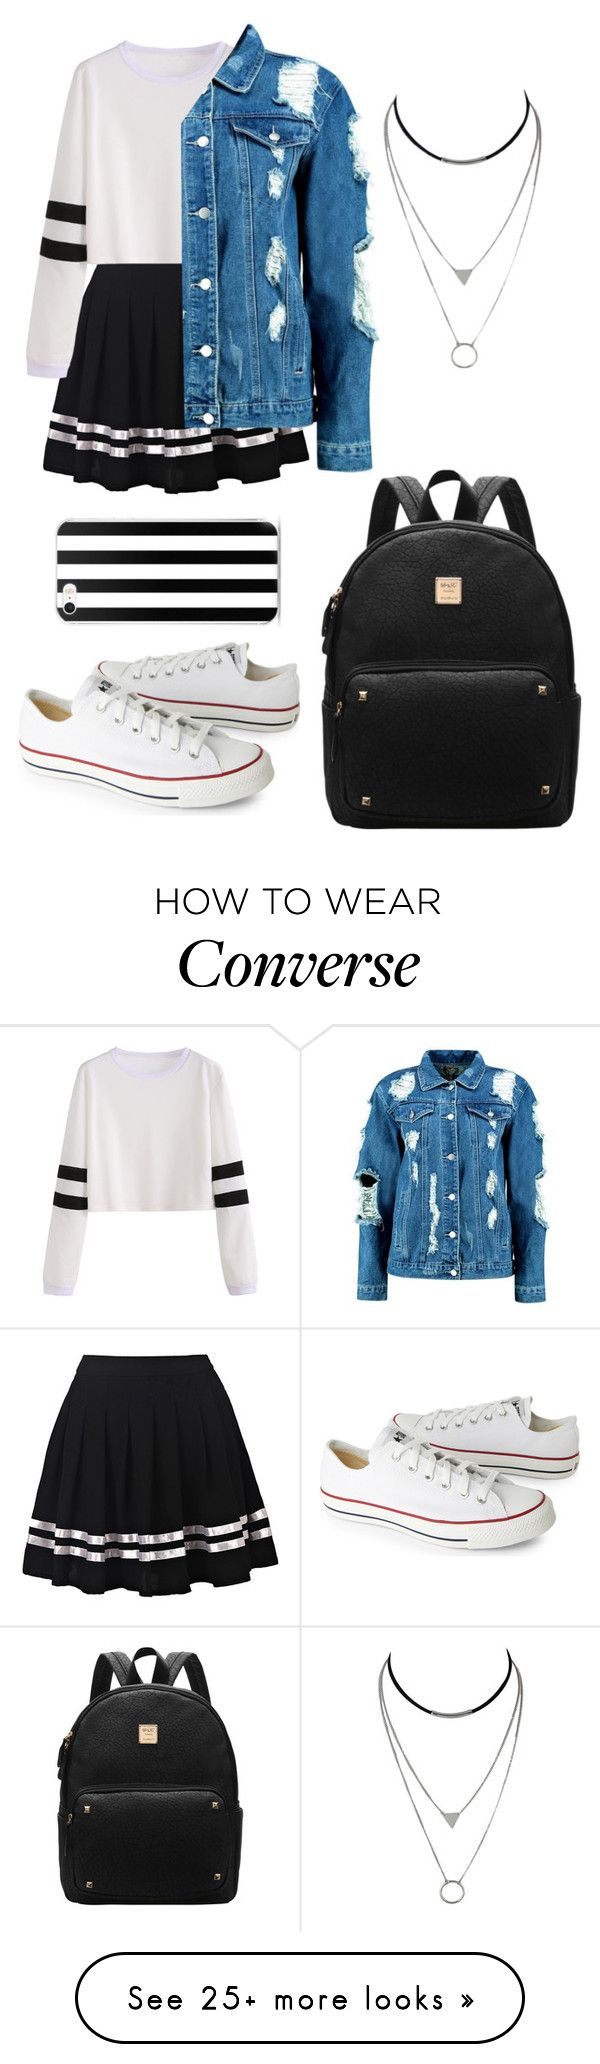 """Untitled #860"" by samantha1-a on Polyvore featuring Boohoo and Converse"